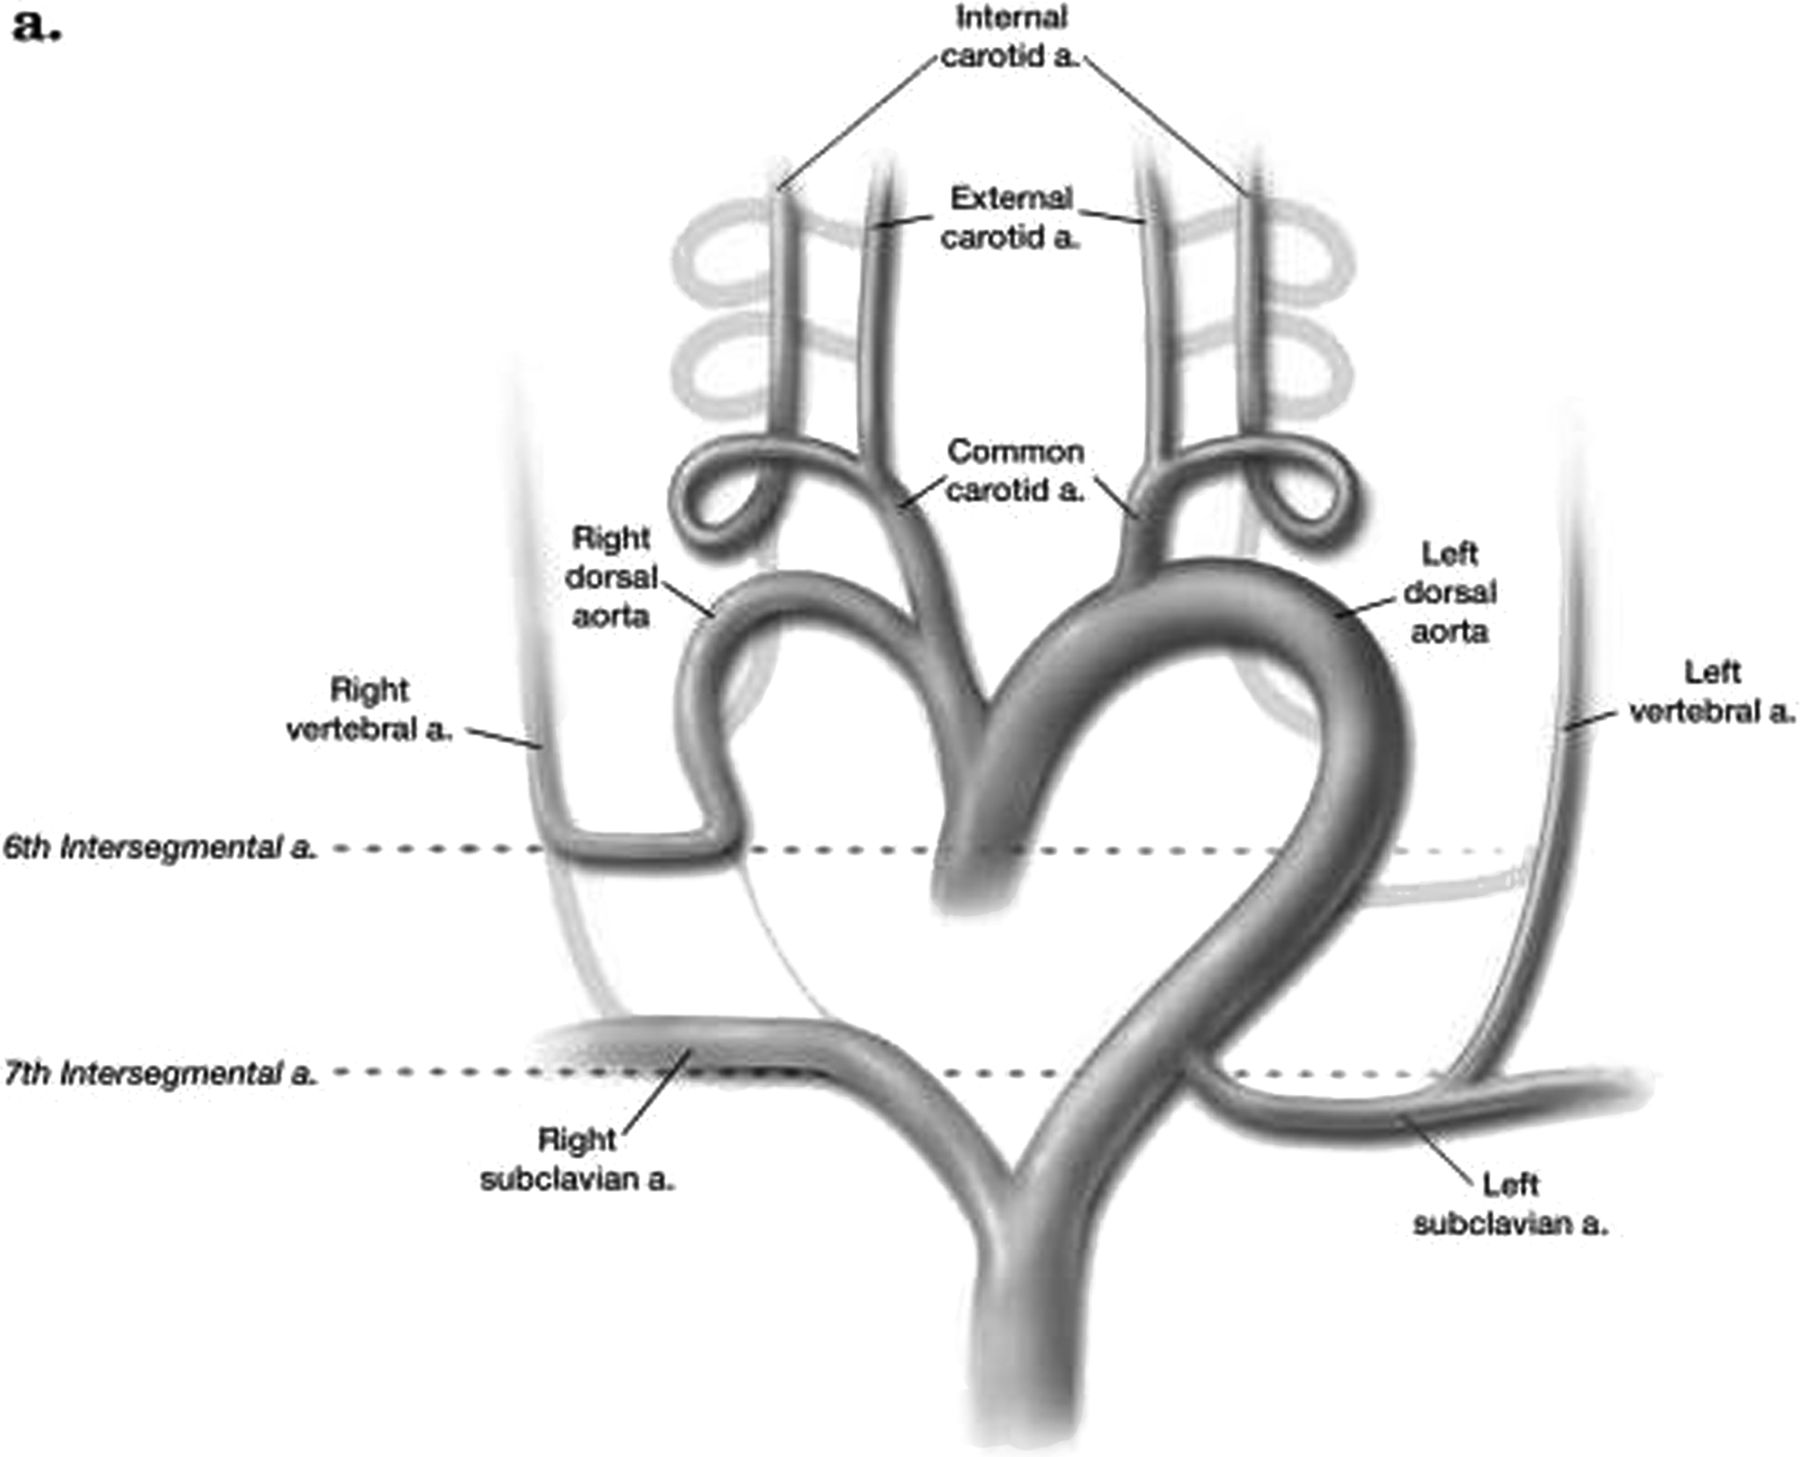 Anomalous Origin Of The Right Vertebral Artery From The Right Common